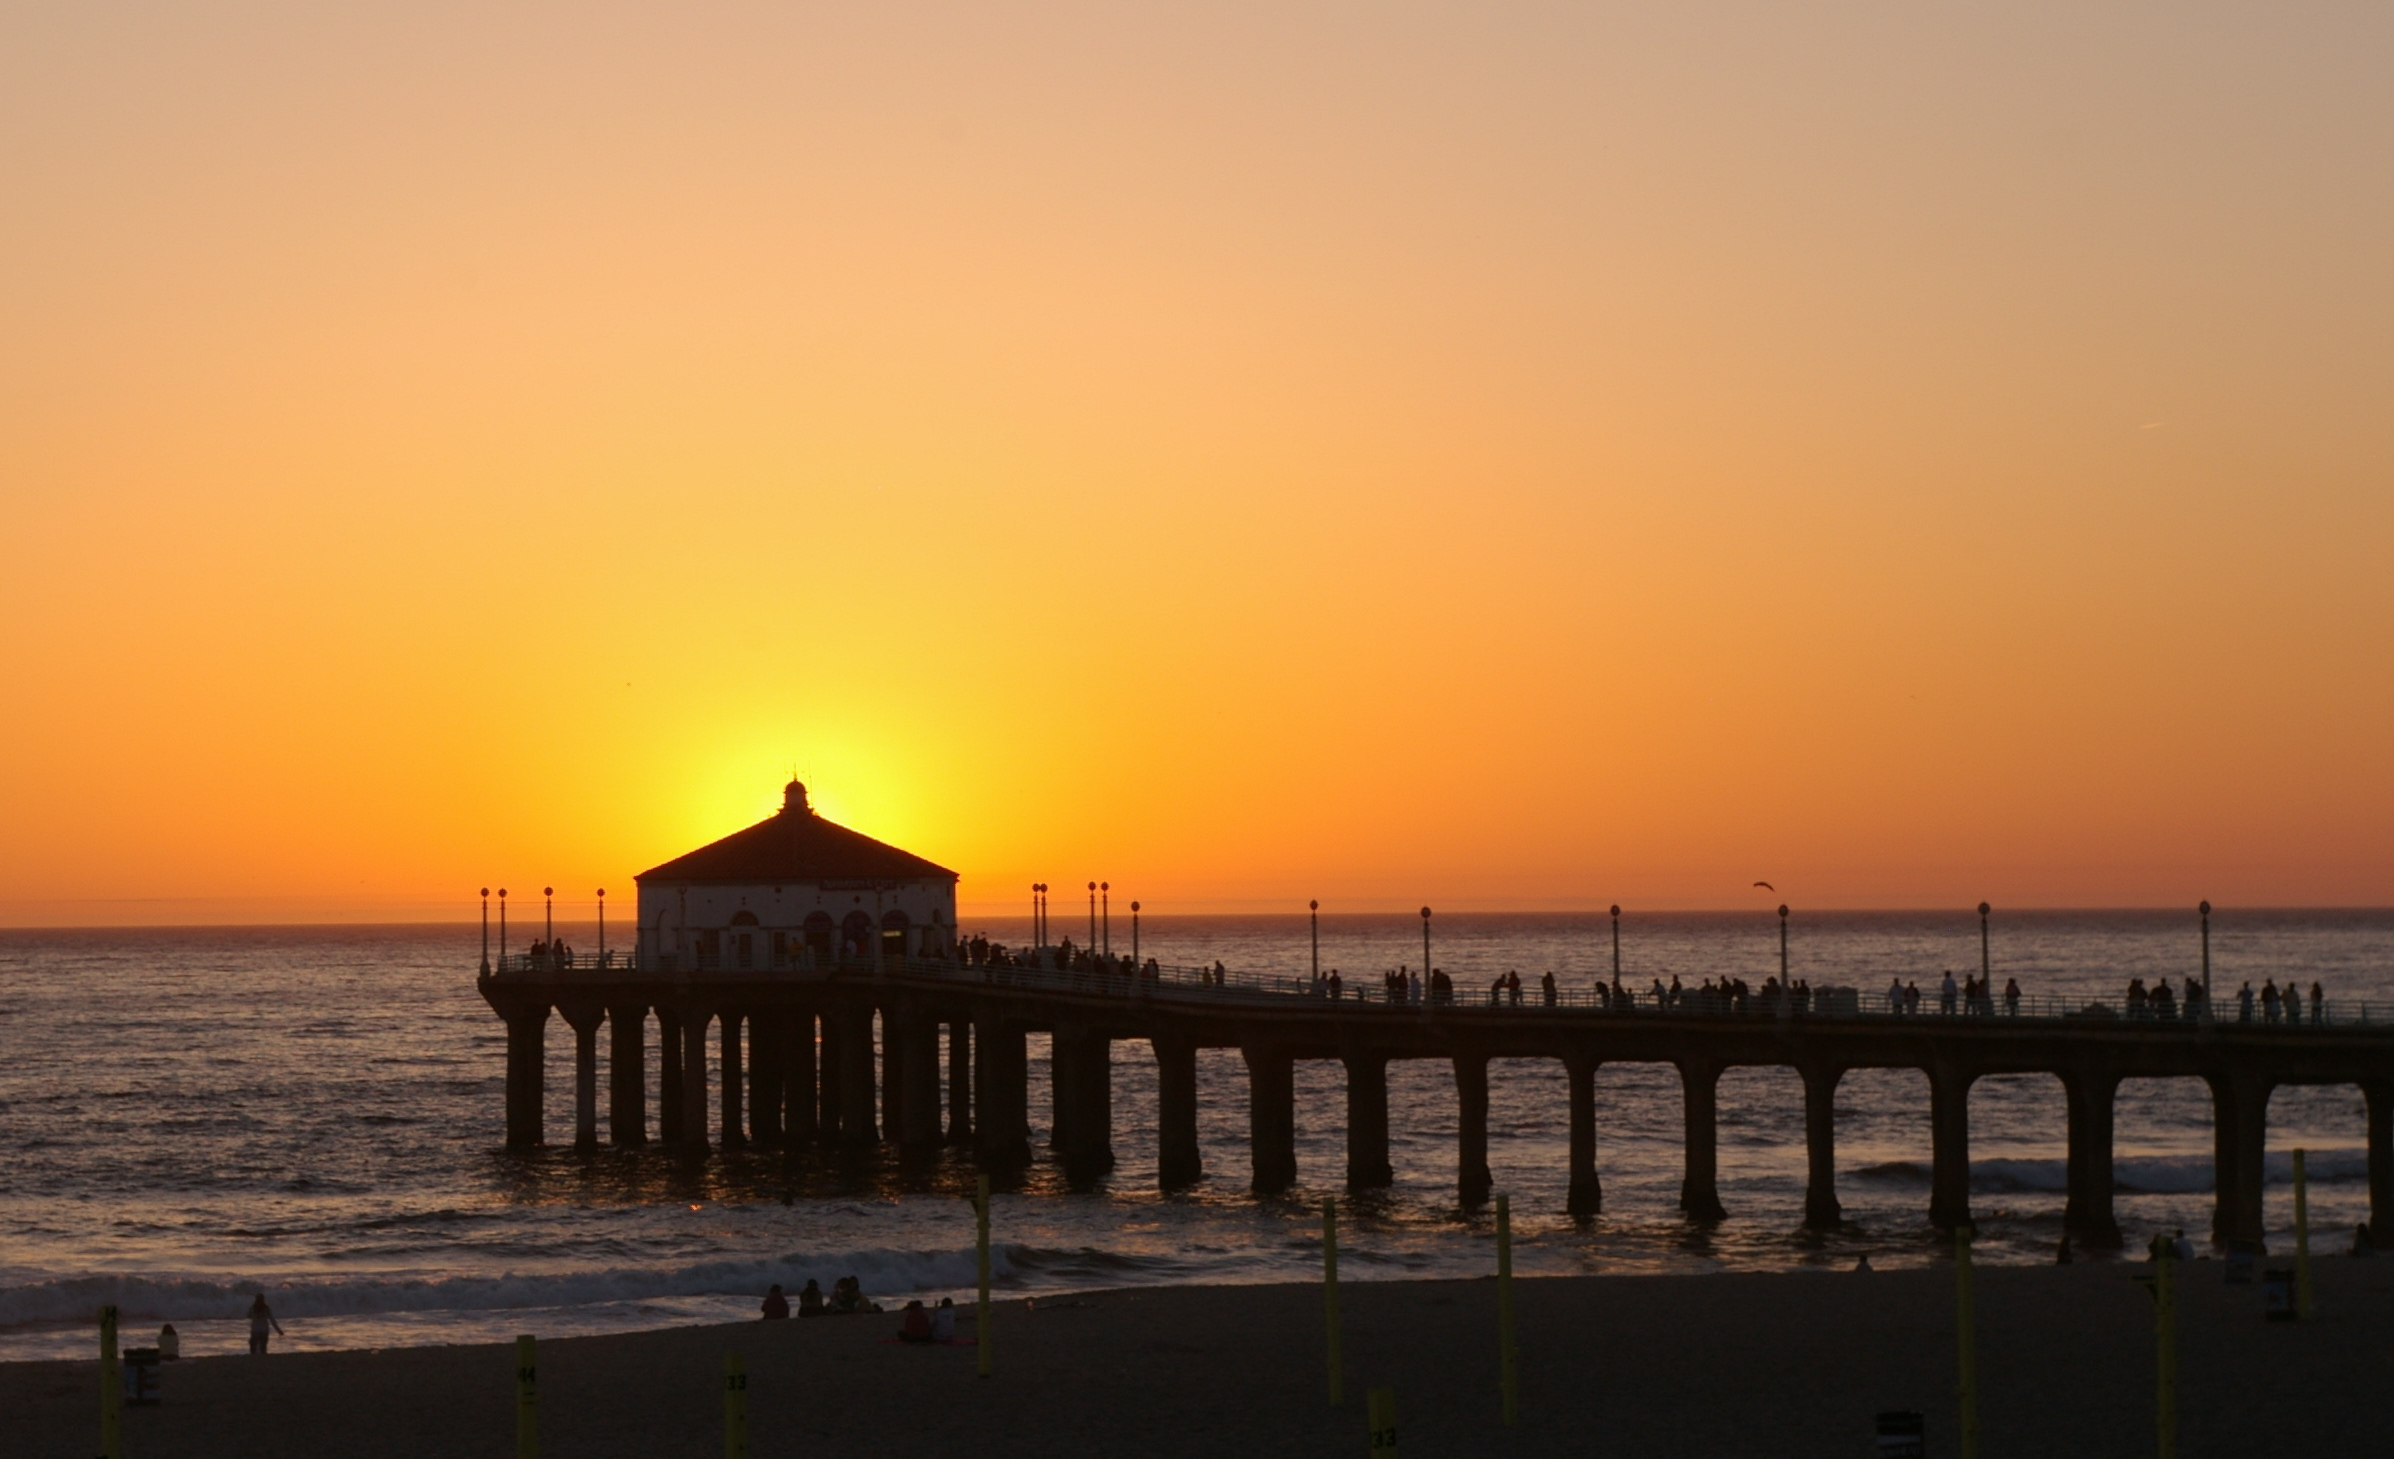 Gang Member Found Washed Up On Brooklyn Beach Wearing Cement Shoes Manhattan Beach Pier at sunset with the sun behind the roundhouse at piers end